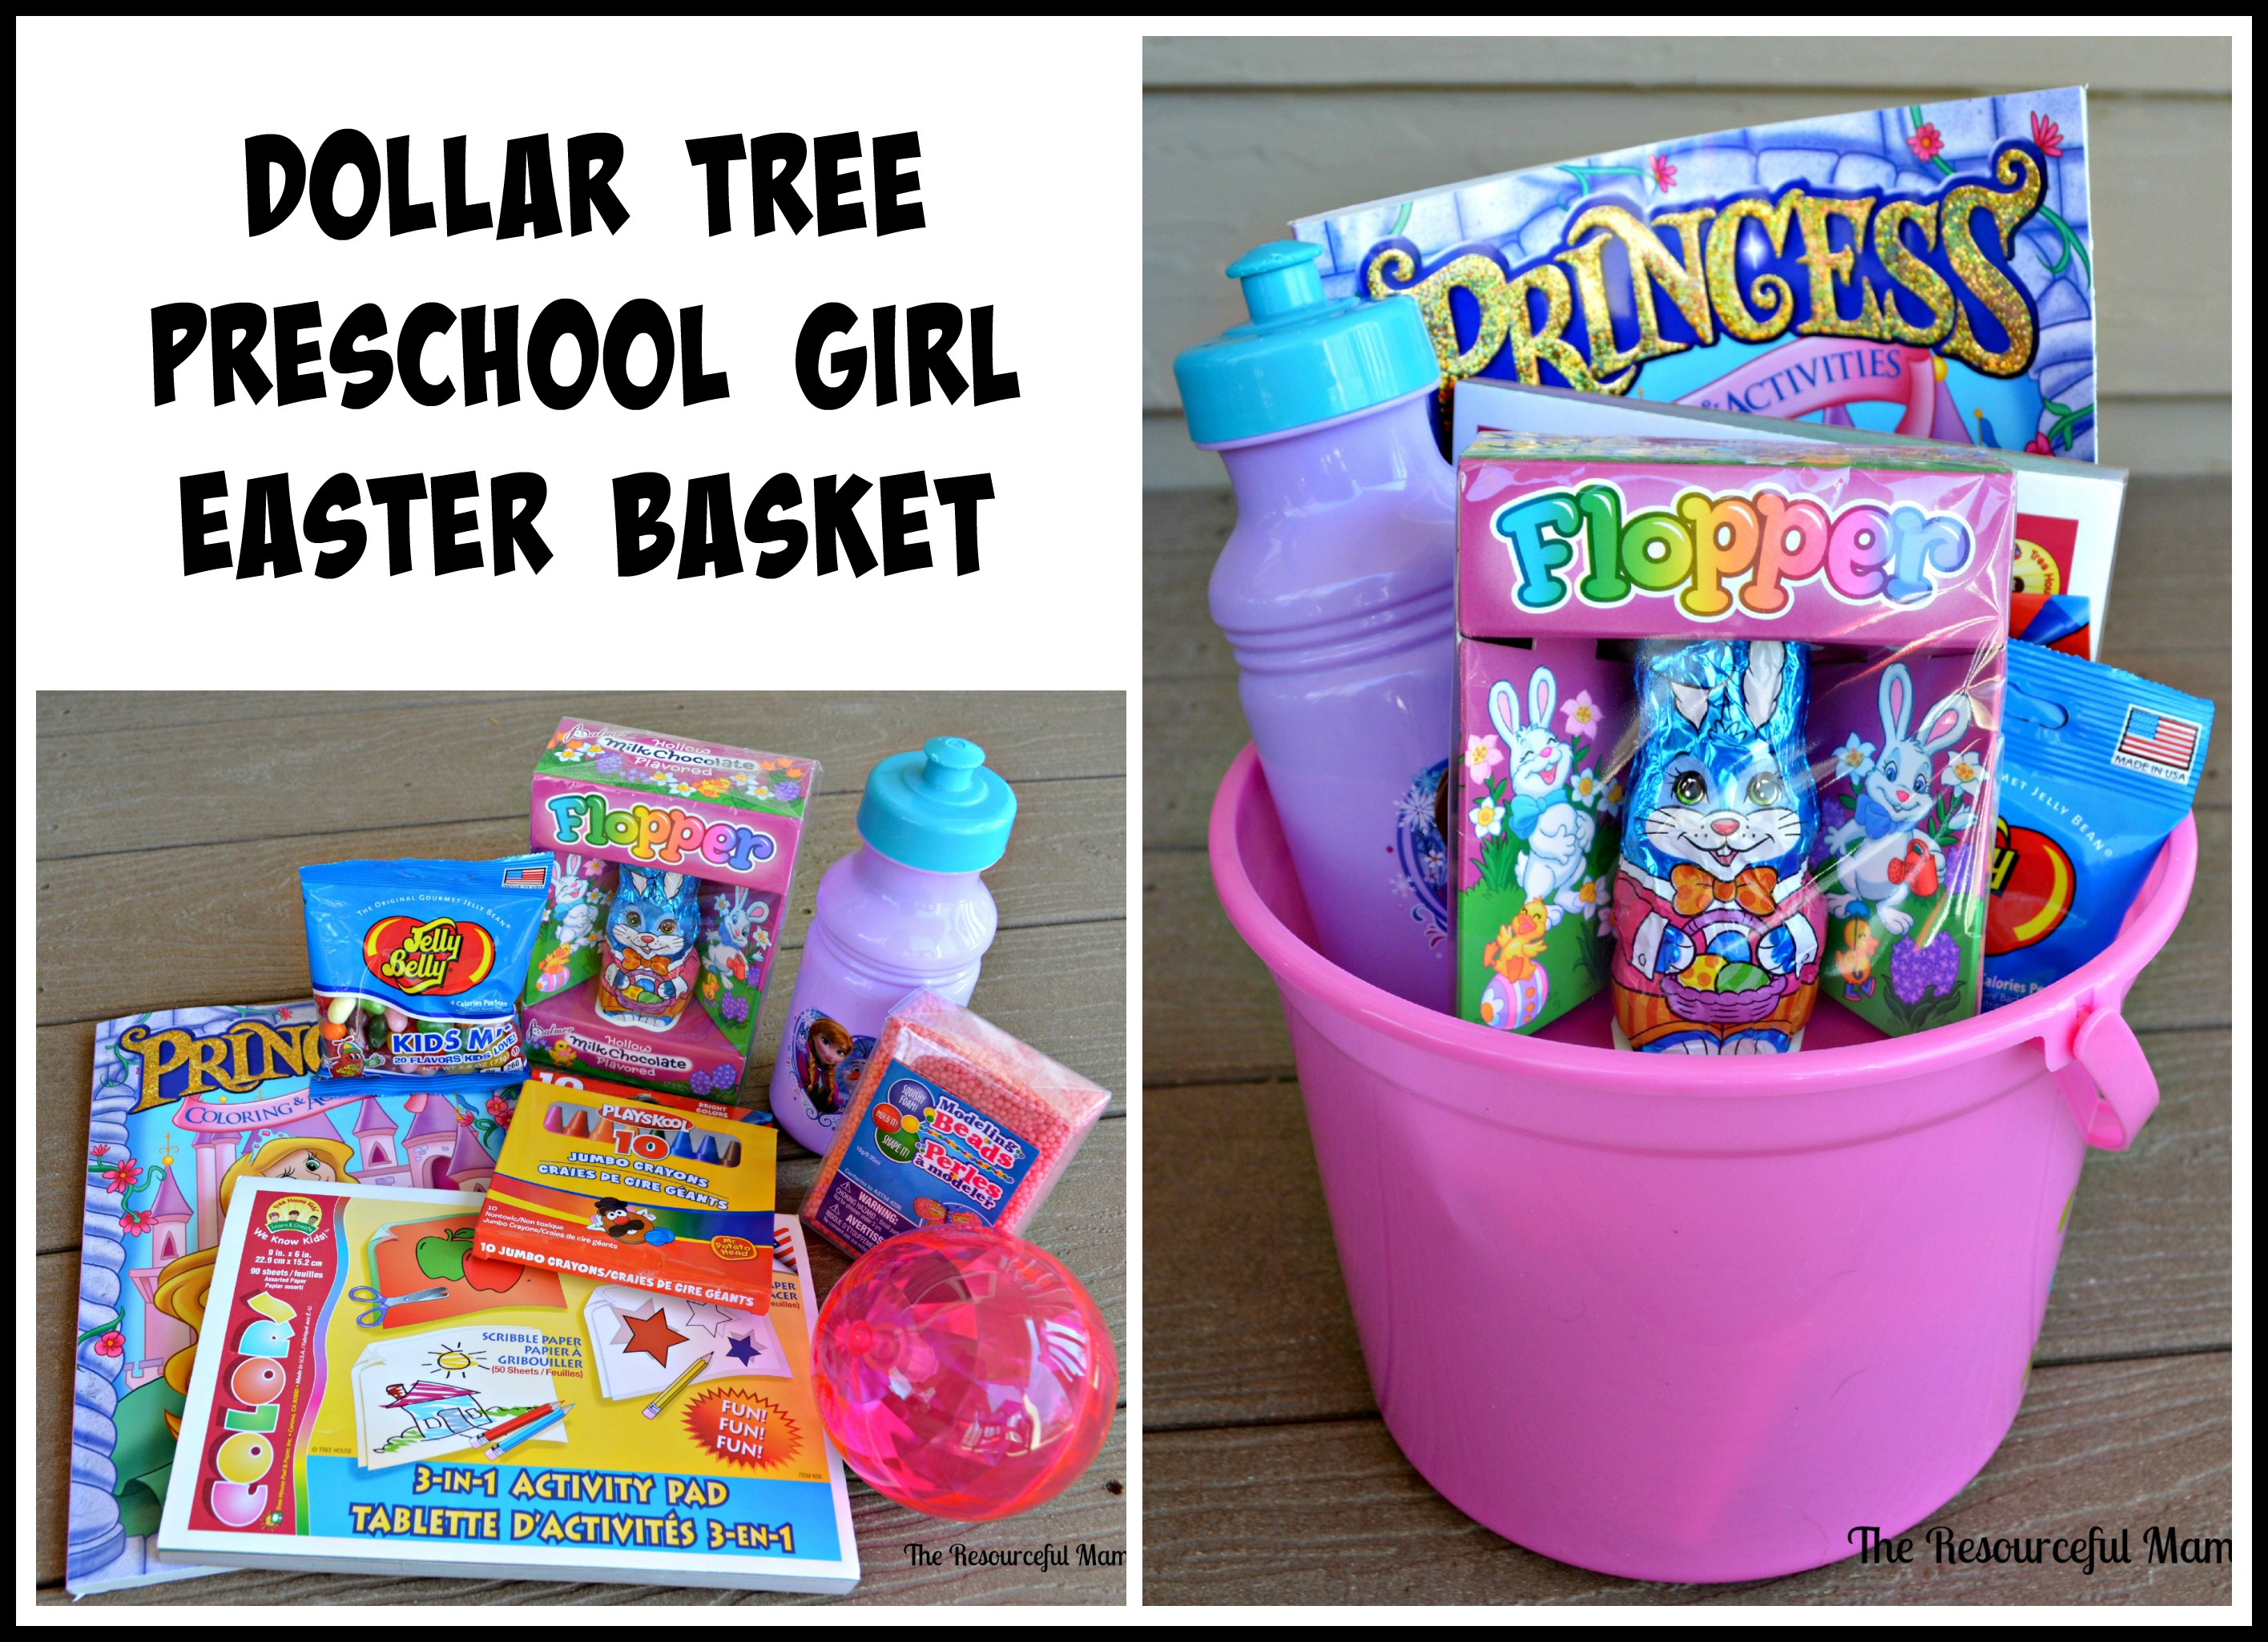 Dollar tree easter baskets the resourceful mama dollar tree preschool girl easter basket negle Image collections